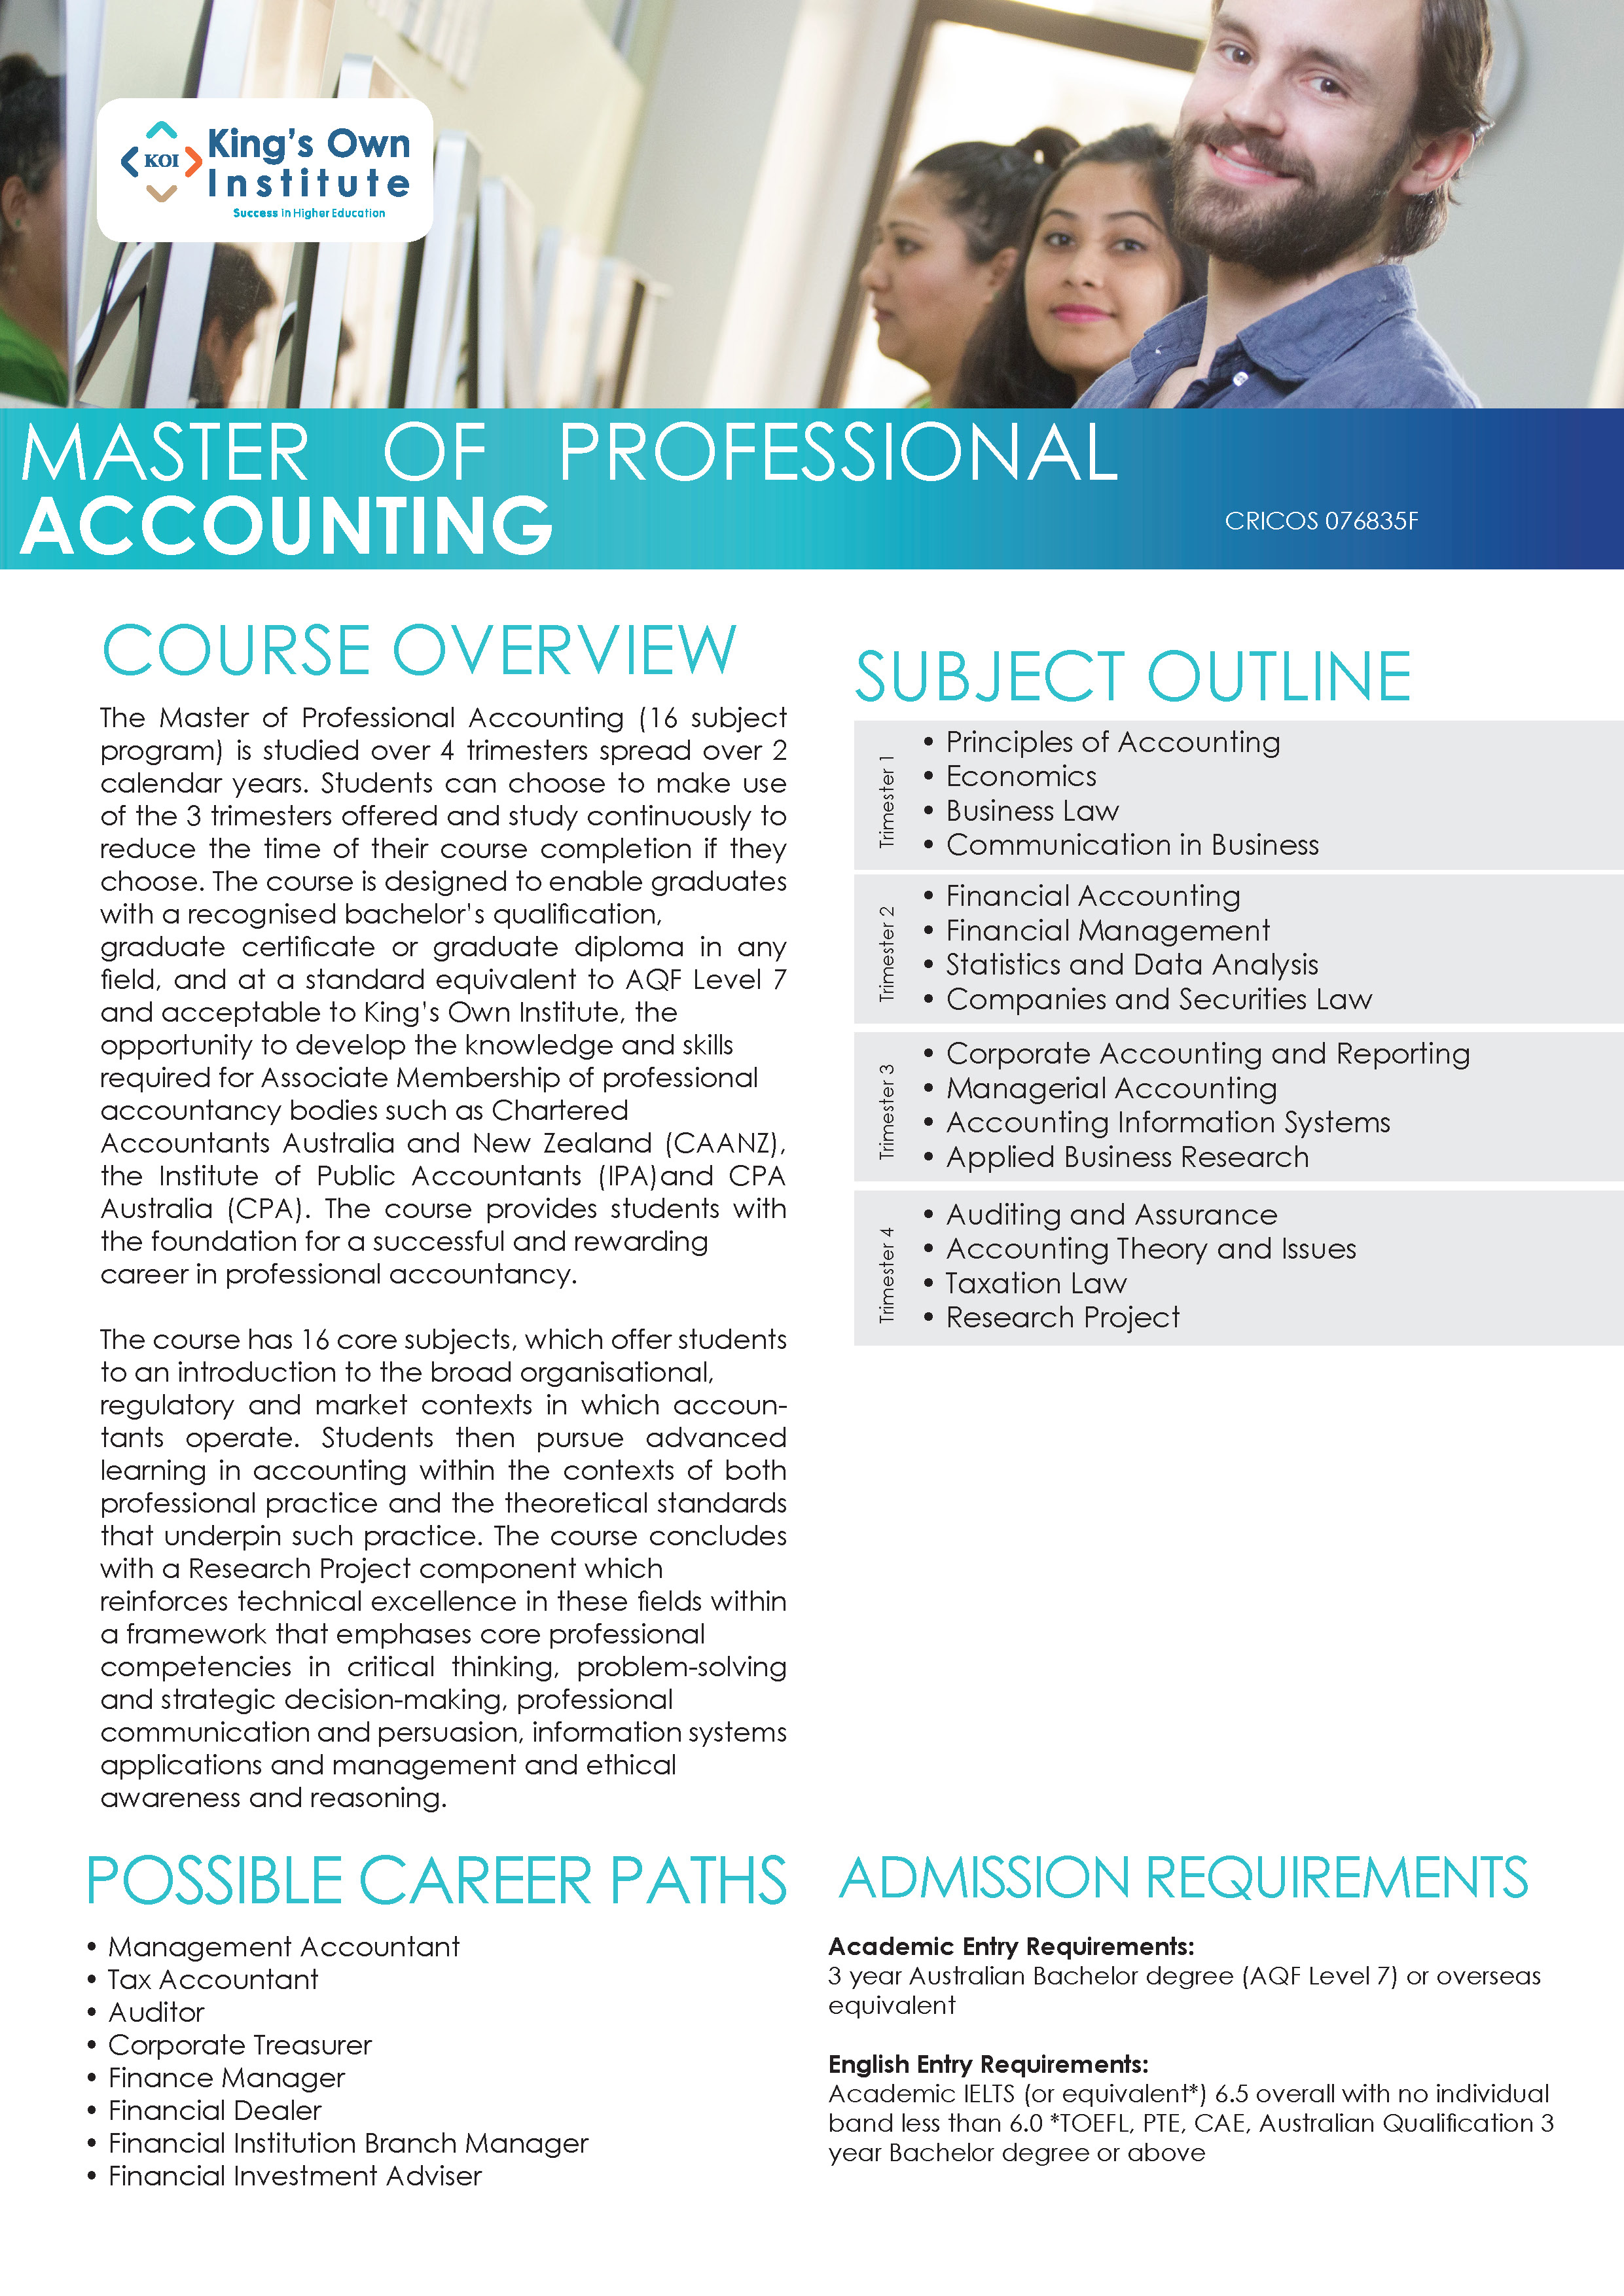 MASTER OF PROFESSIONAL ACCOUNTING